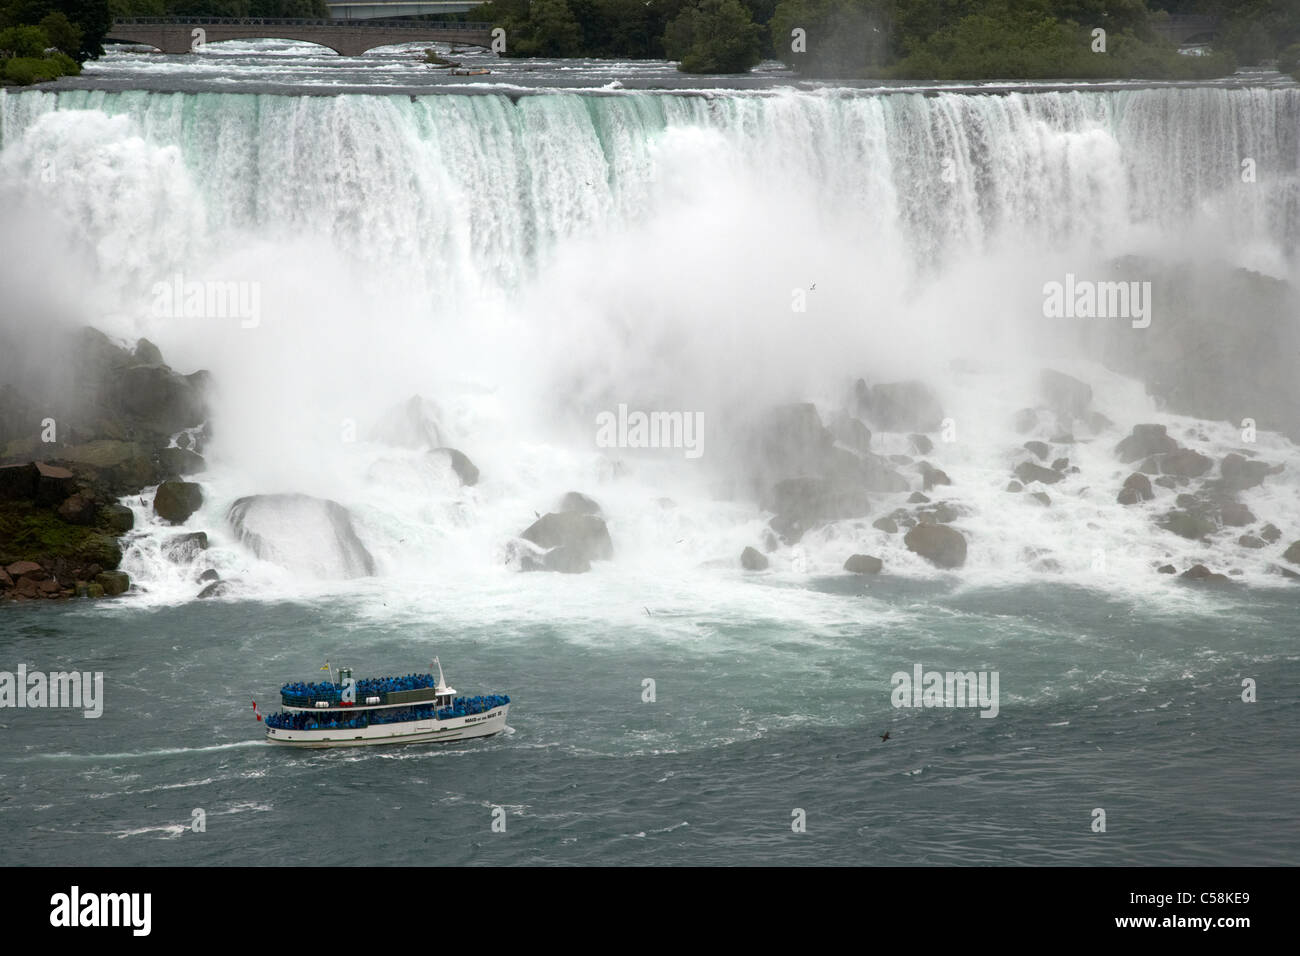 maid of the mist boat below the american and bridal veil falls niagara falls ontario canada - Stock Image